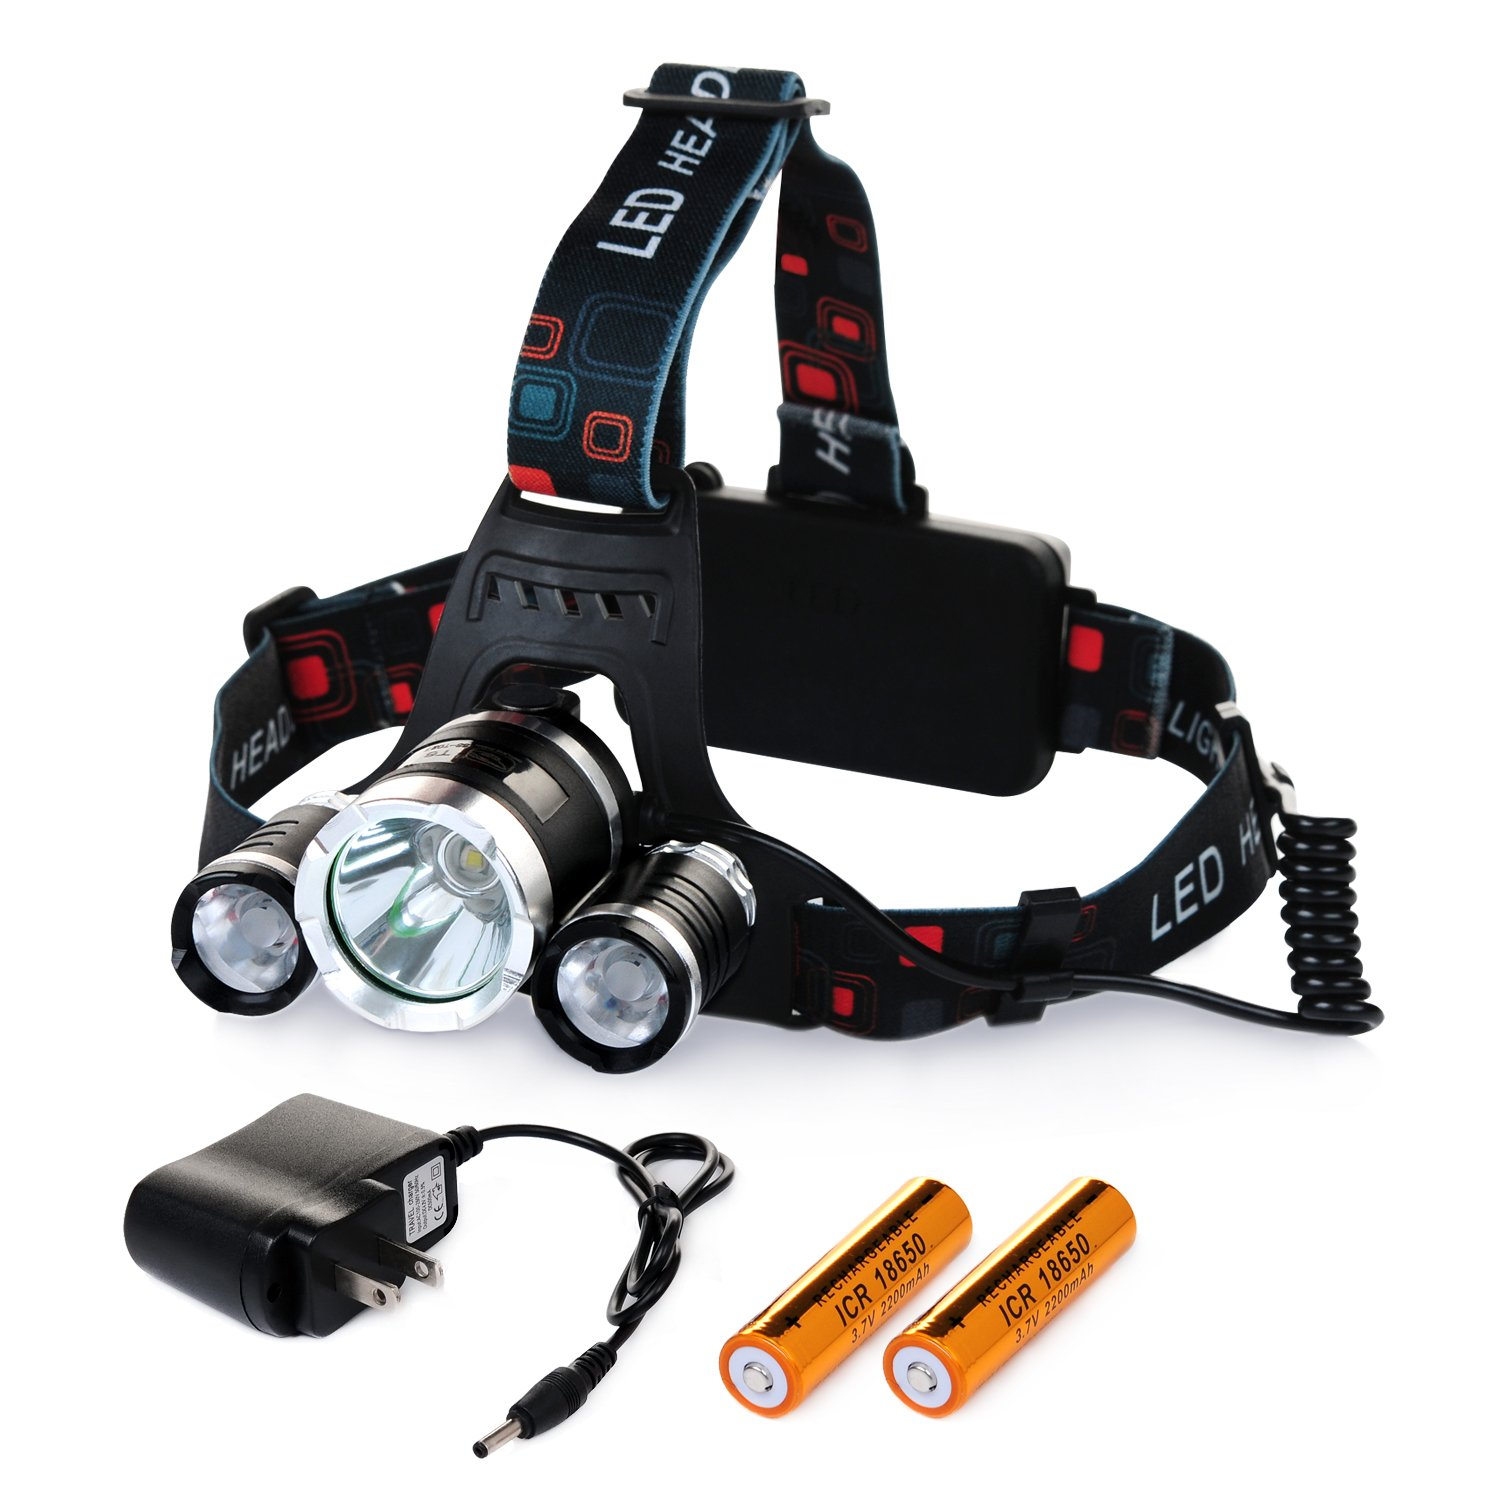 Chnano Led Headlamp Headlight Waterproof Flashlight Torch 3 Cree Xm T6 High Power L 5000 Lumens Black L2 Lumen Bright With Rechargeable Batteries And Wall Charger For Hiking